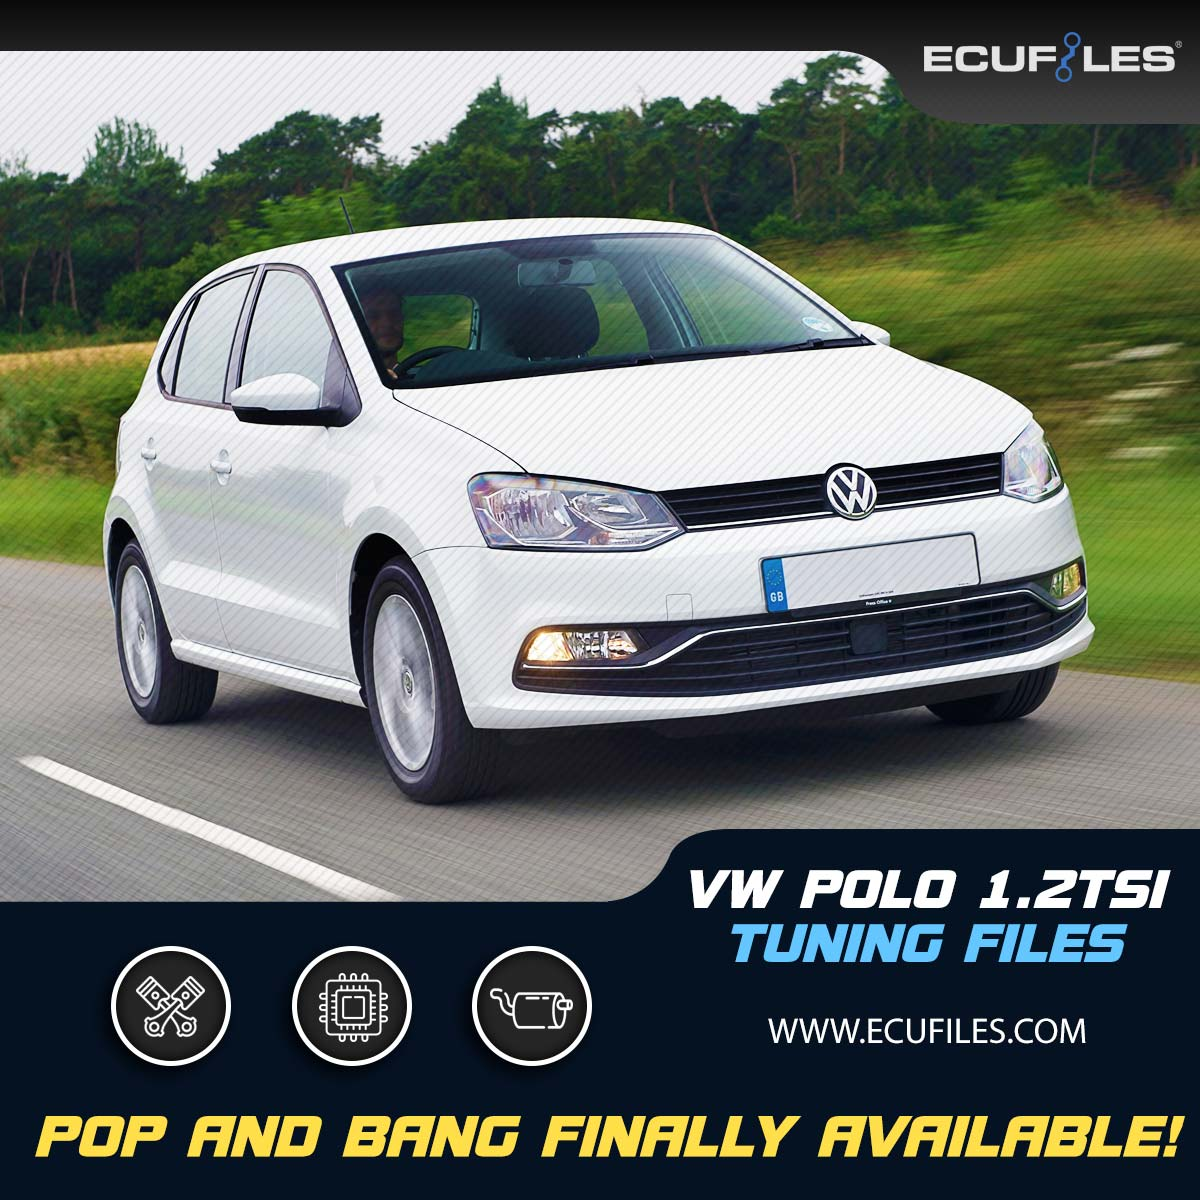 VW Polo 1 2tsi Tuning Files - Pop and Bang Finally Available - Ecufiles